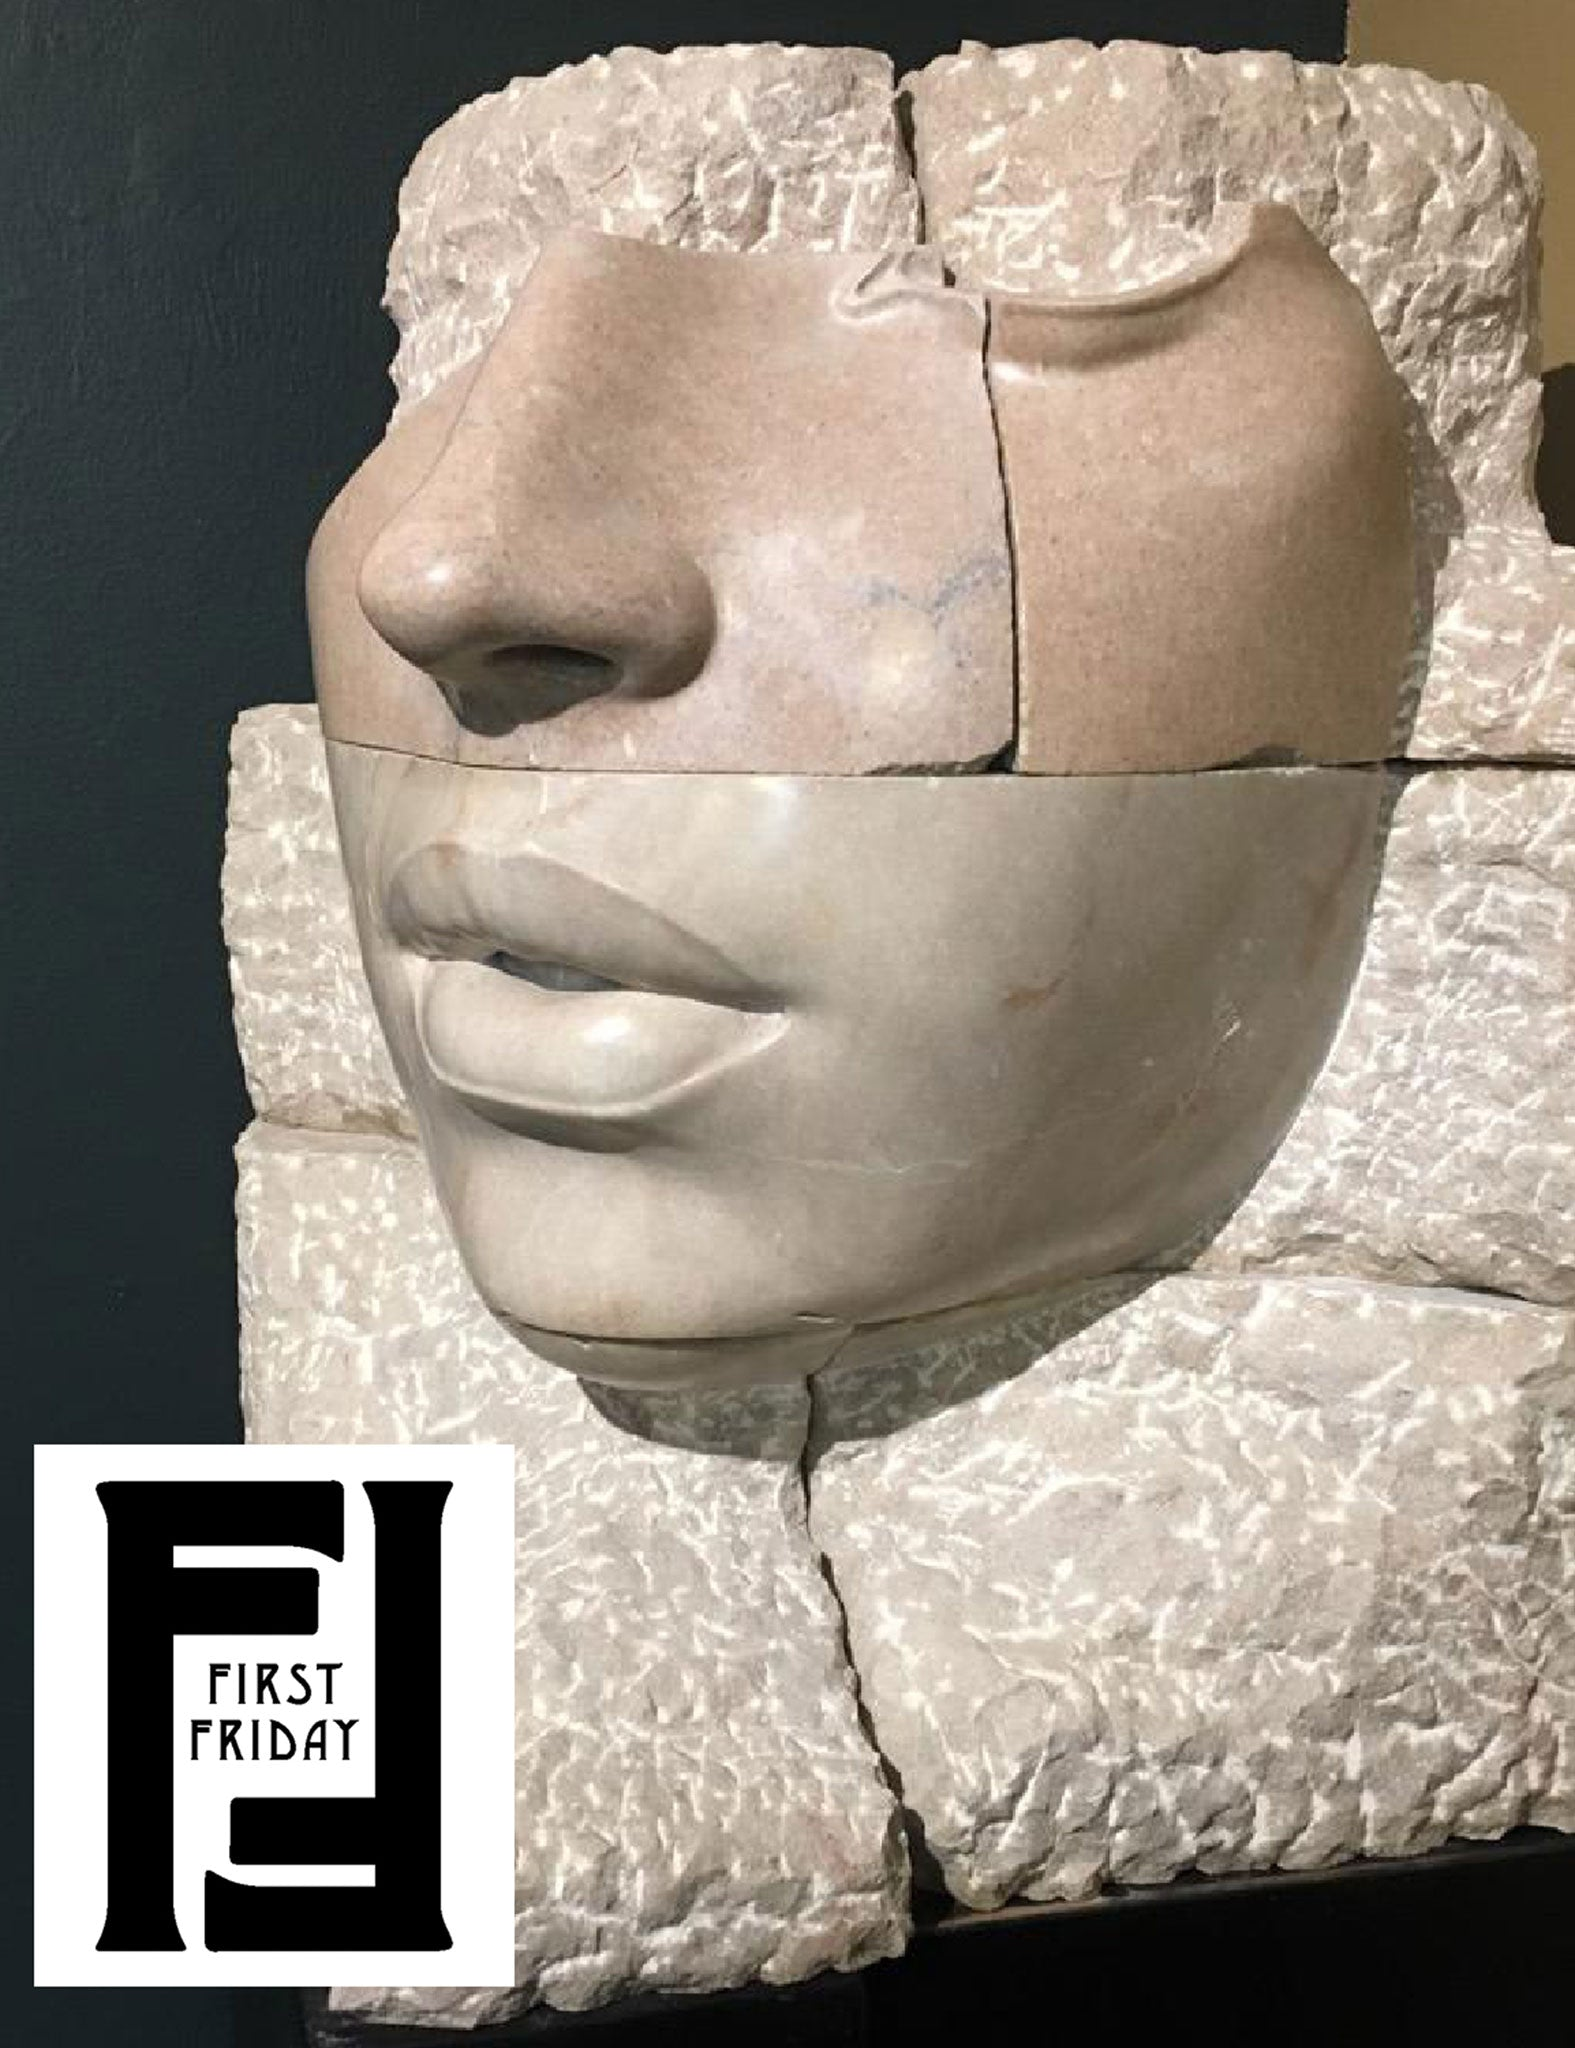 over-sized marble fragmented face sculpture Cornerstone by Philippe Faraut